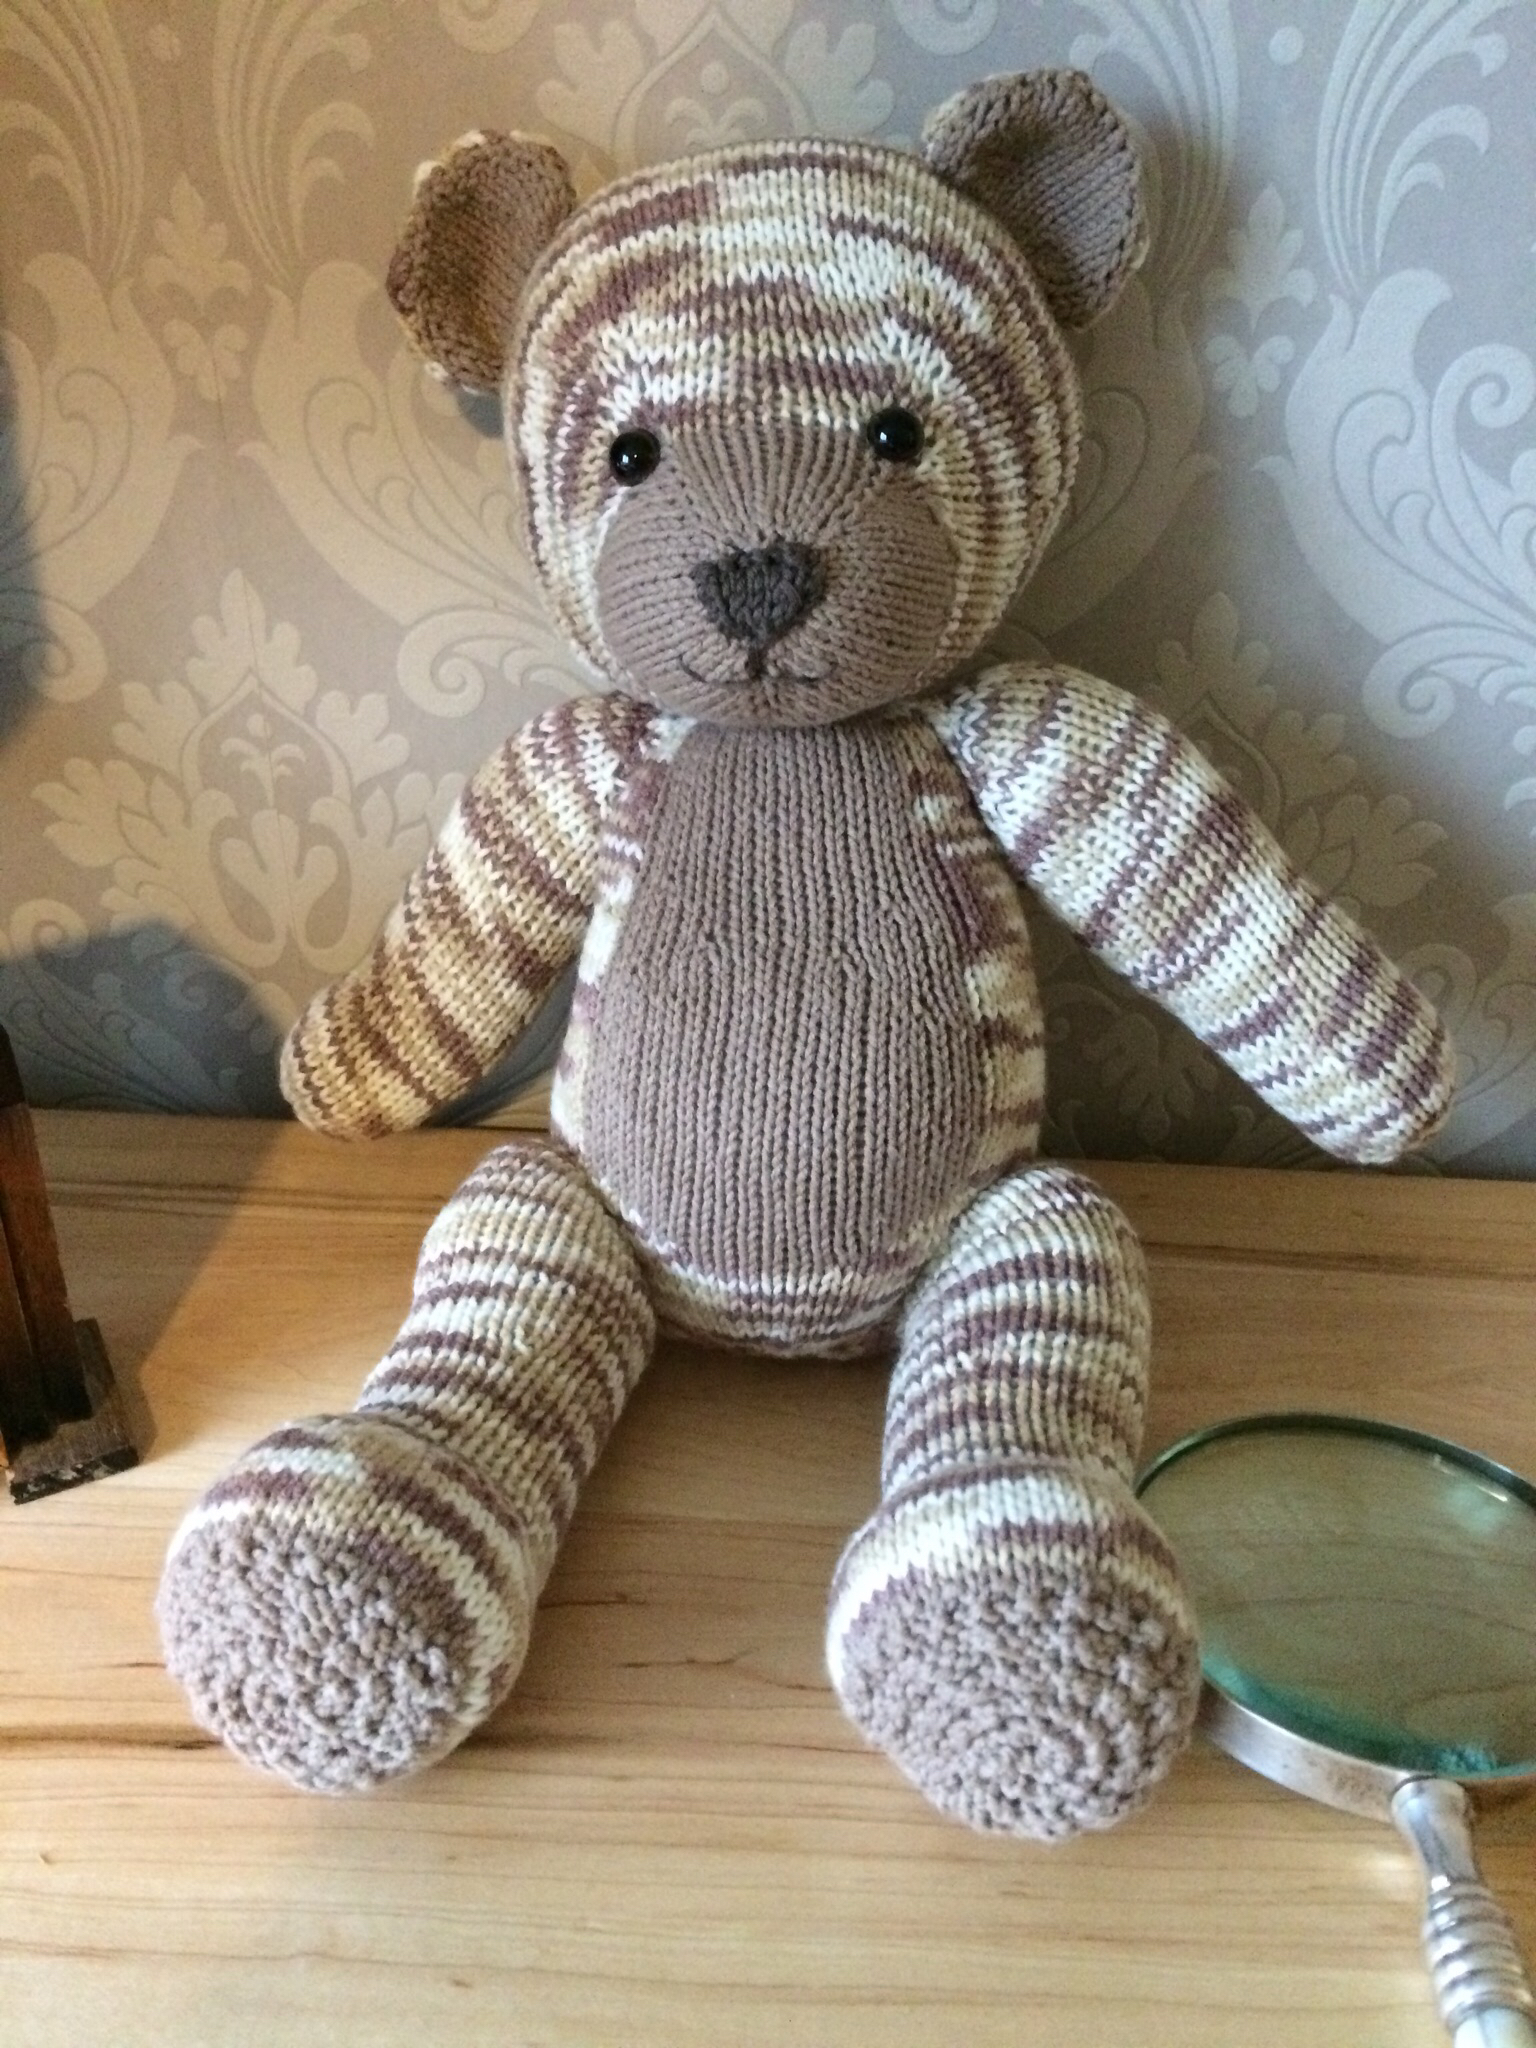 Knitables Teddy Bear Knitting Project By Susy J